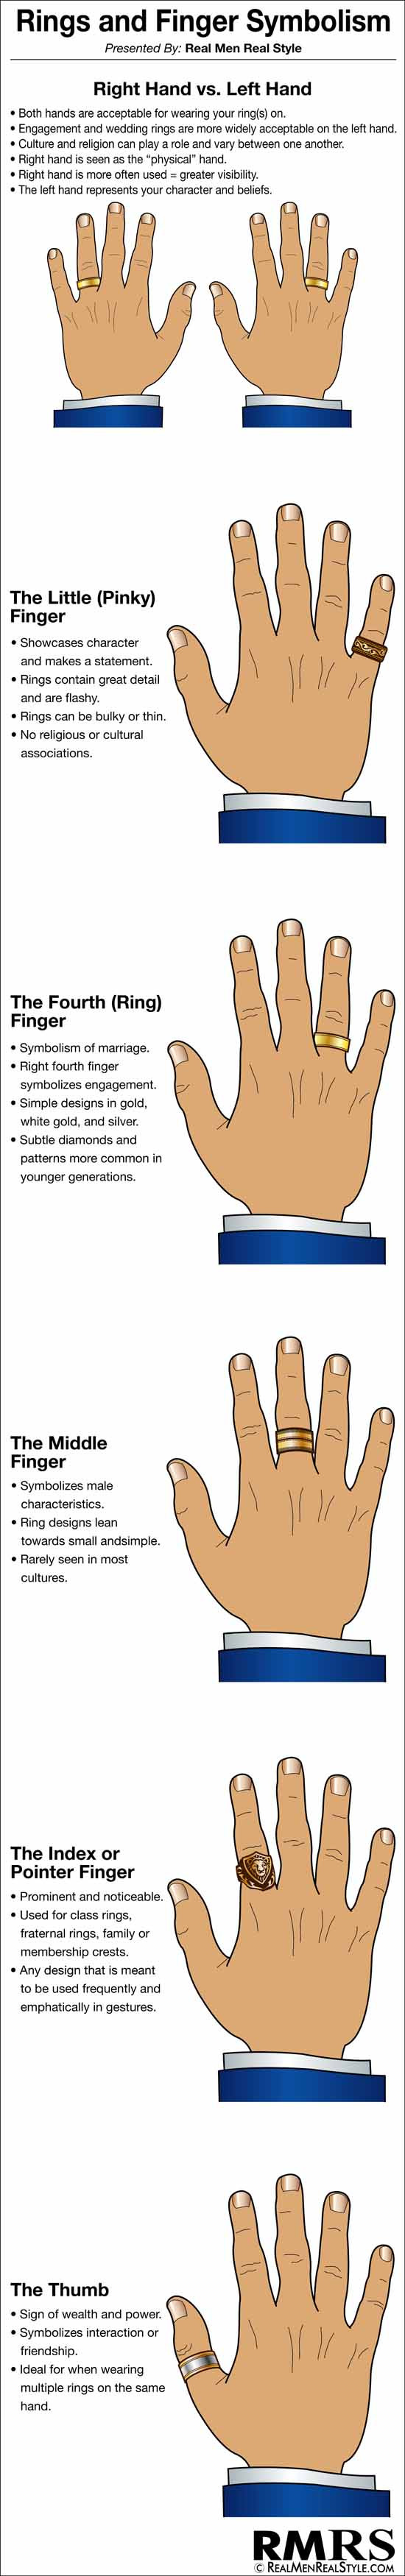 Rings-and-Finger-Symbolism-Infographic-550